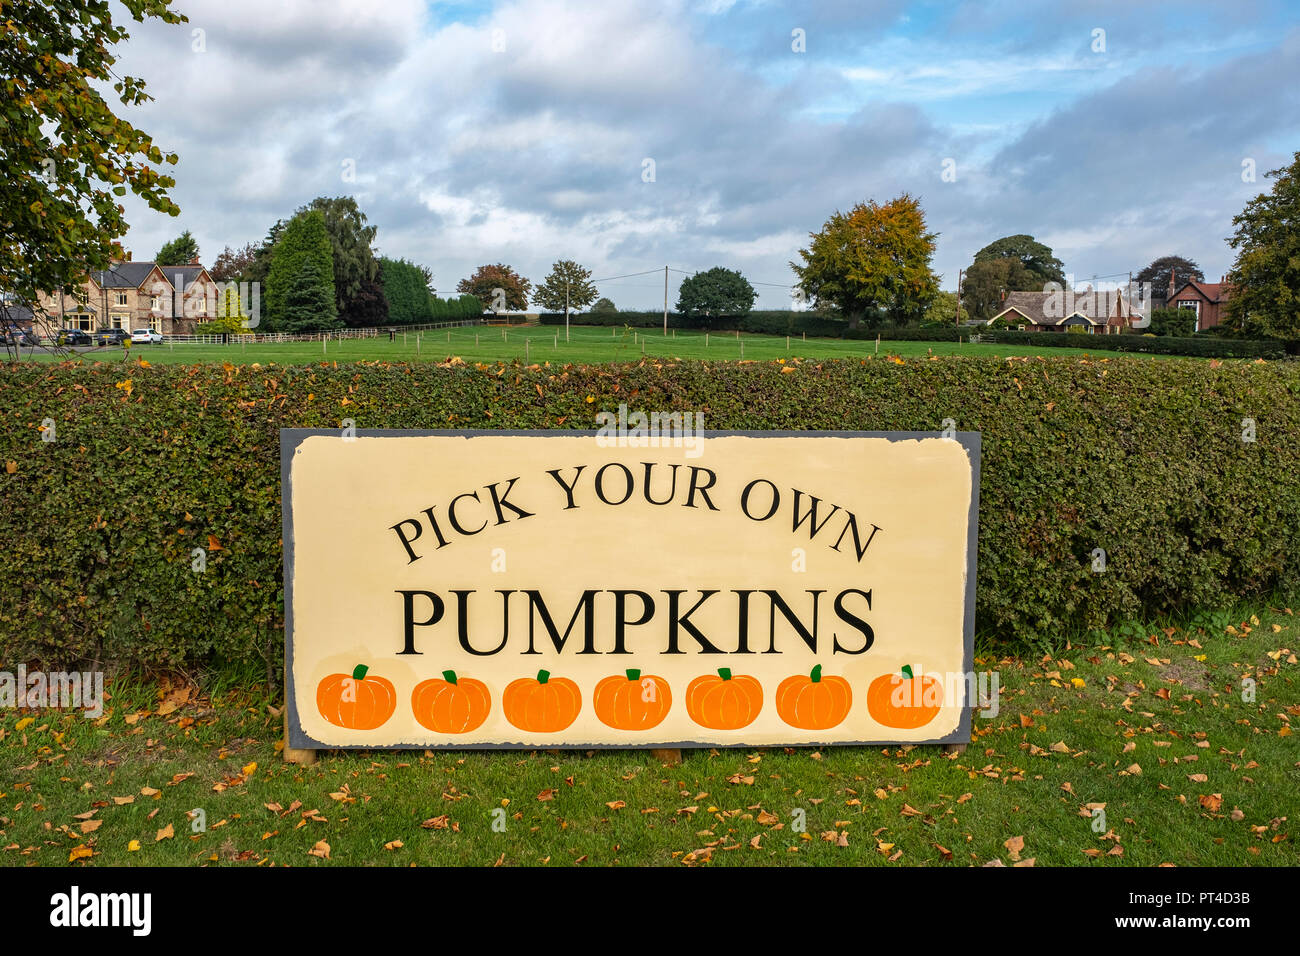 Pick your own pumpkins banner at Wheelock farm Cheshire UK - Stock Image